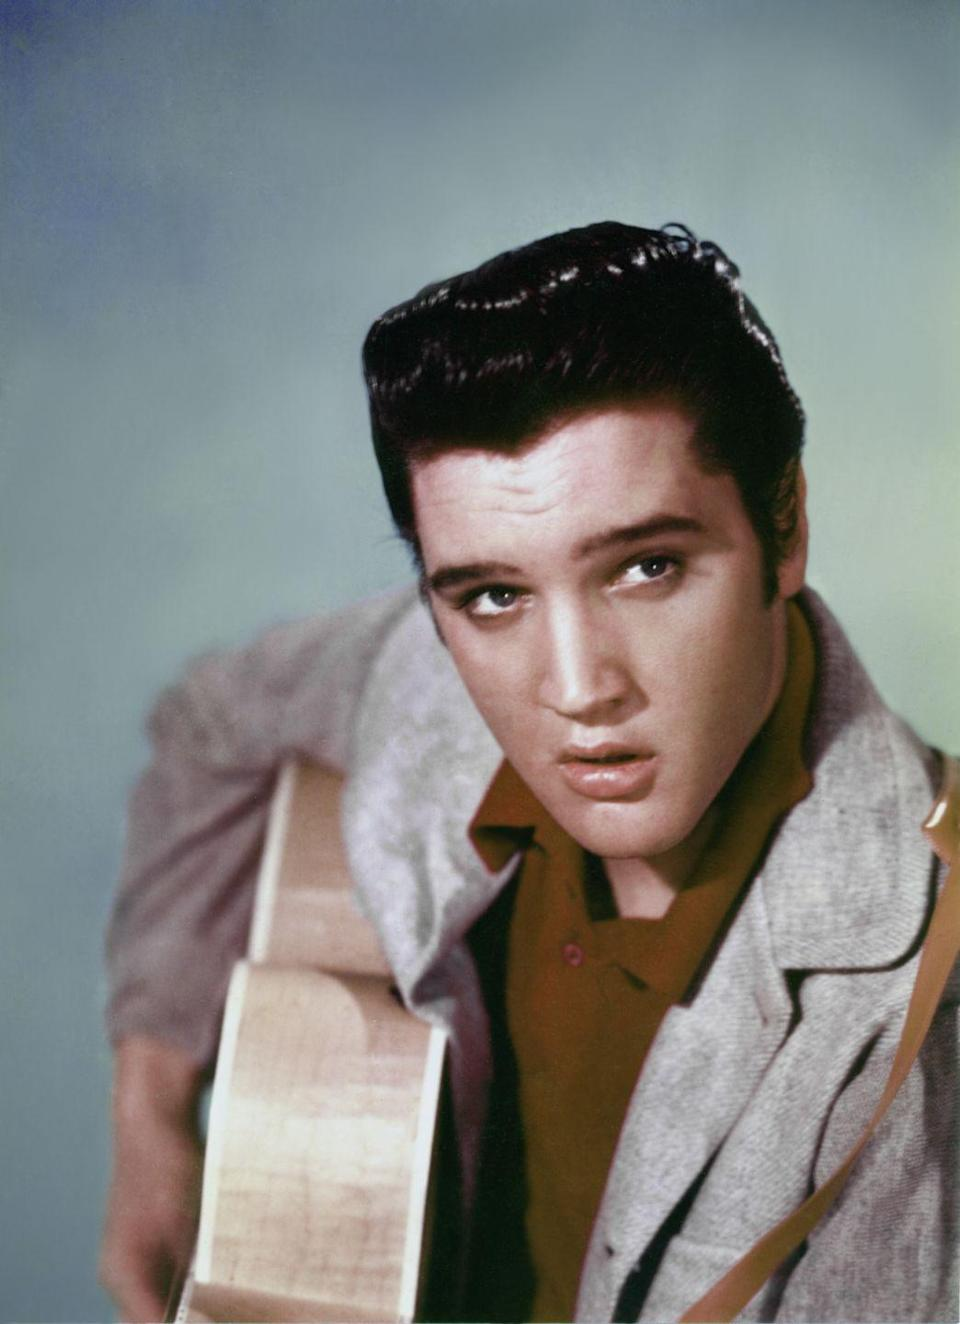 <p>Thanks to his mainstream appeal, Presley snagged himself a three-year contract with Paramount Pictures in 1956. Soon he was embarking on a promising film career.</p>